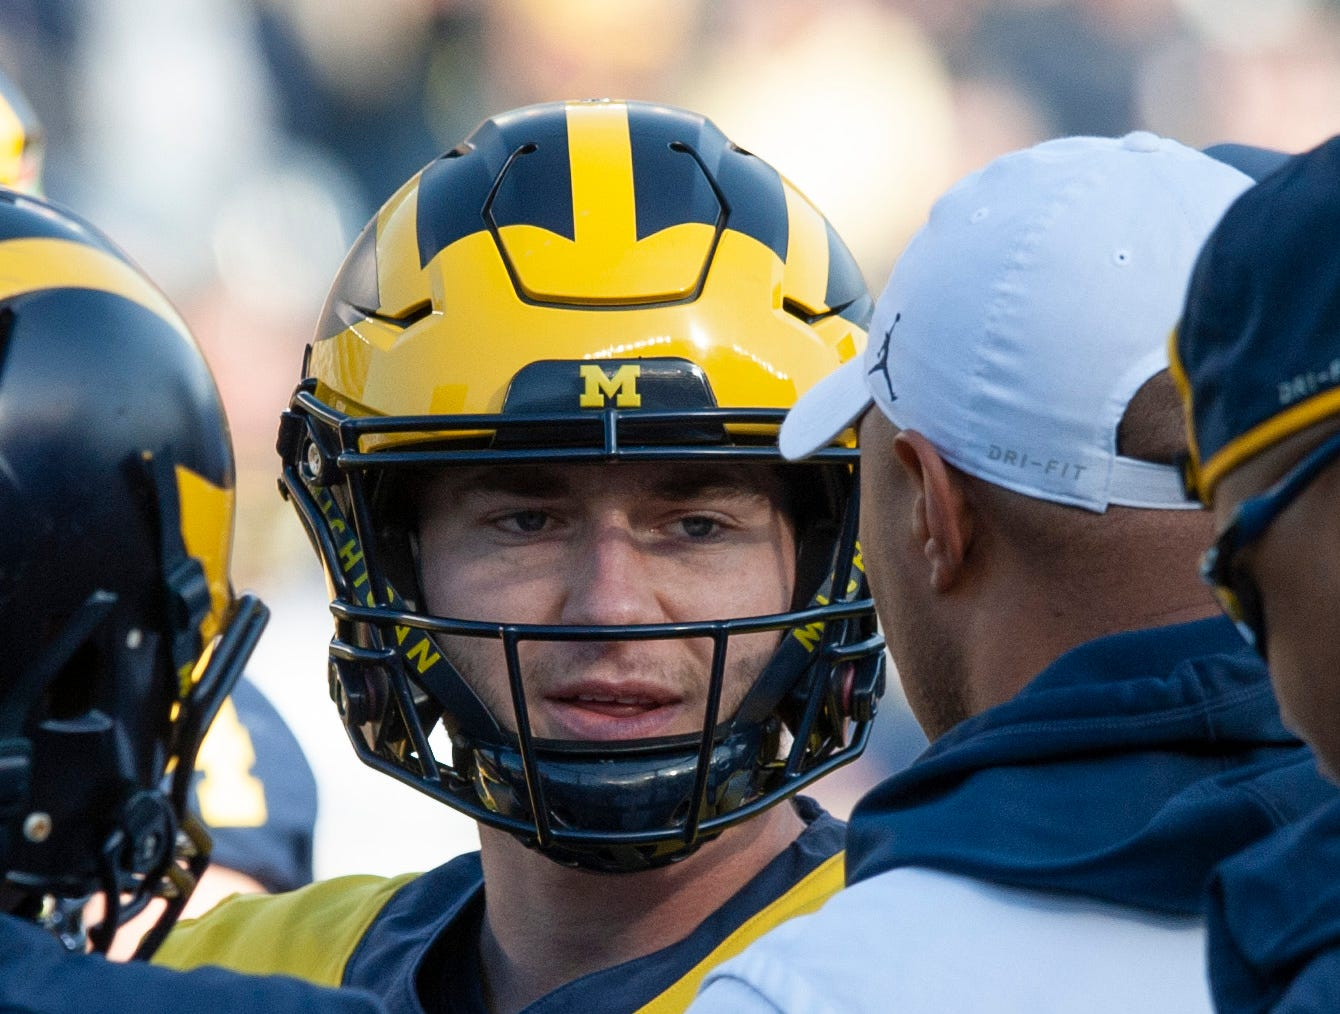 Michigan QB Shea Patterson gets some instruction from offensive coordinator Josh Gattis (white hat) during a break in the action.